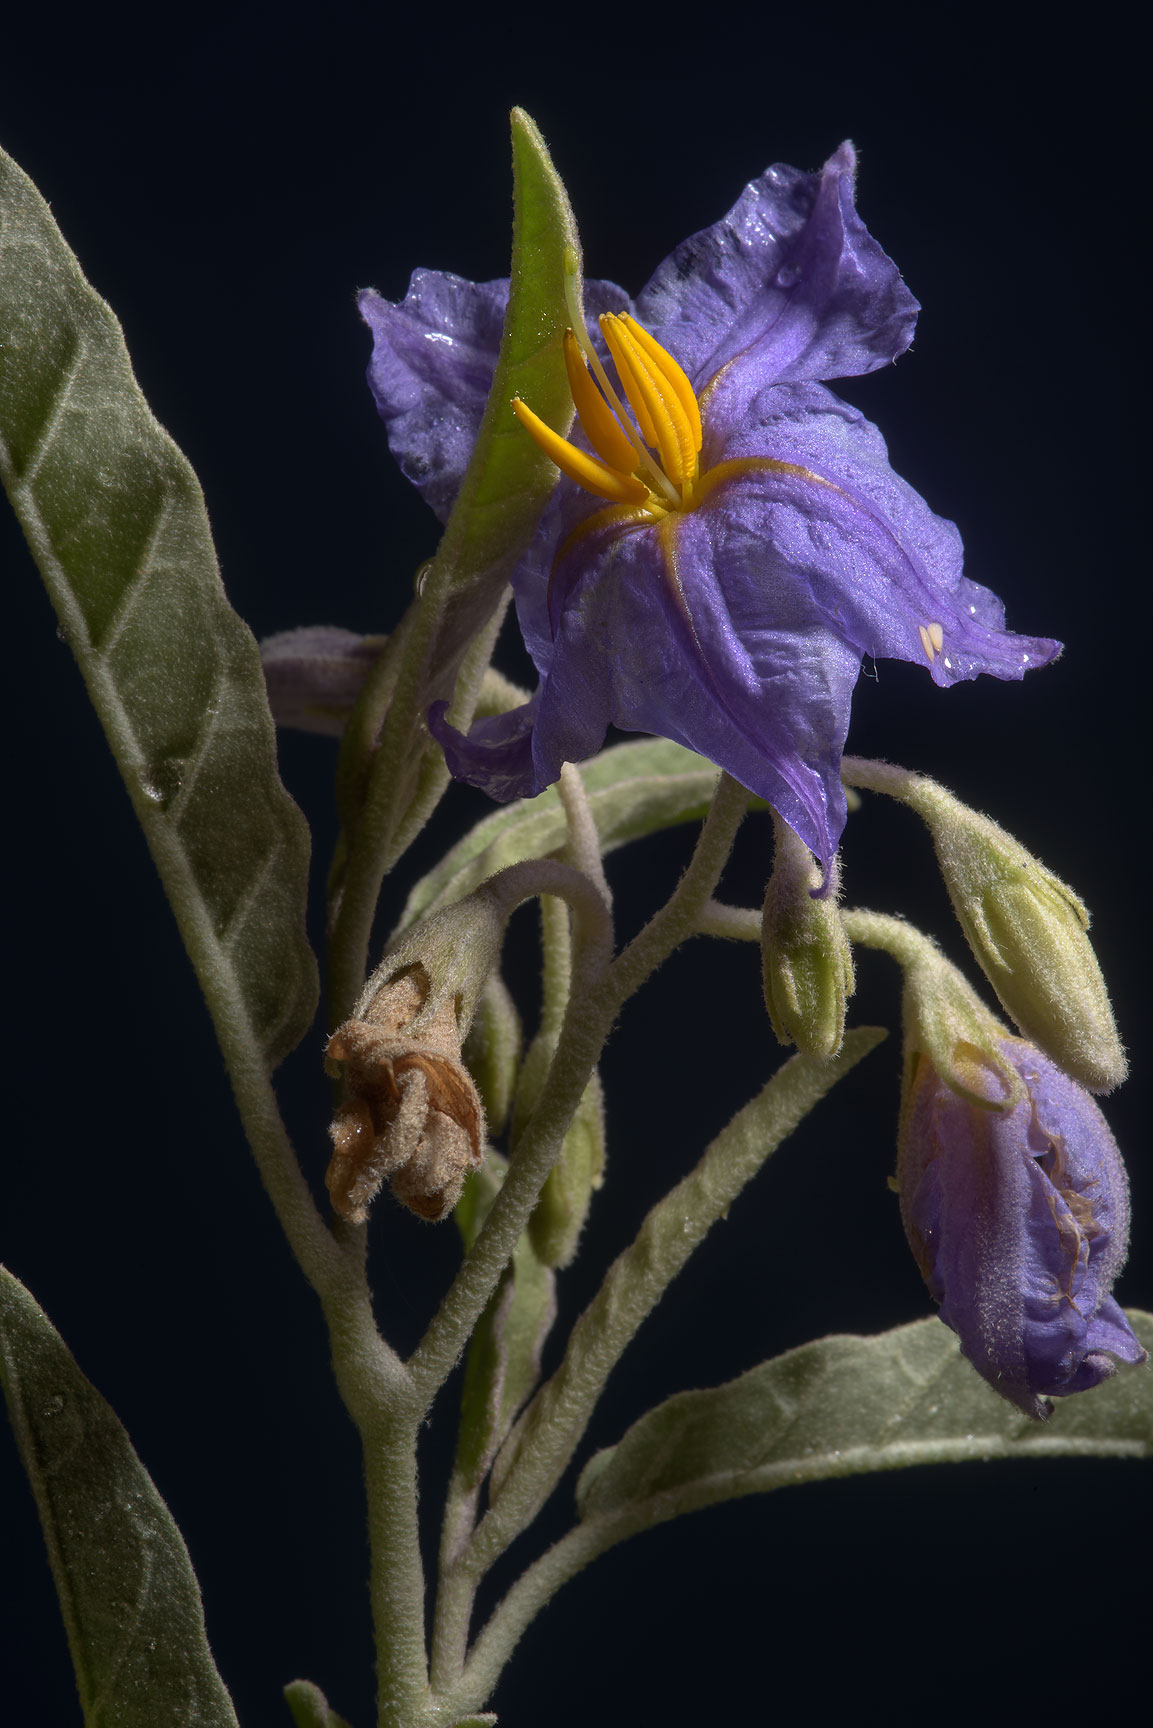 Blooming silverleaf nightshade (Solanum...in Irkhaya (Irkaya) Farms. Qatar